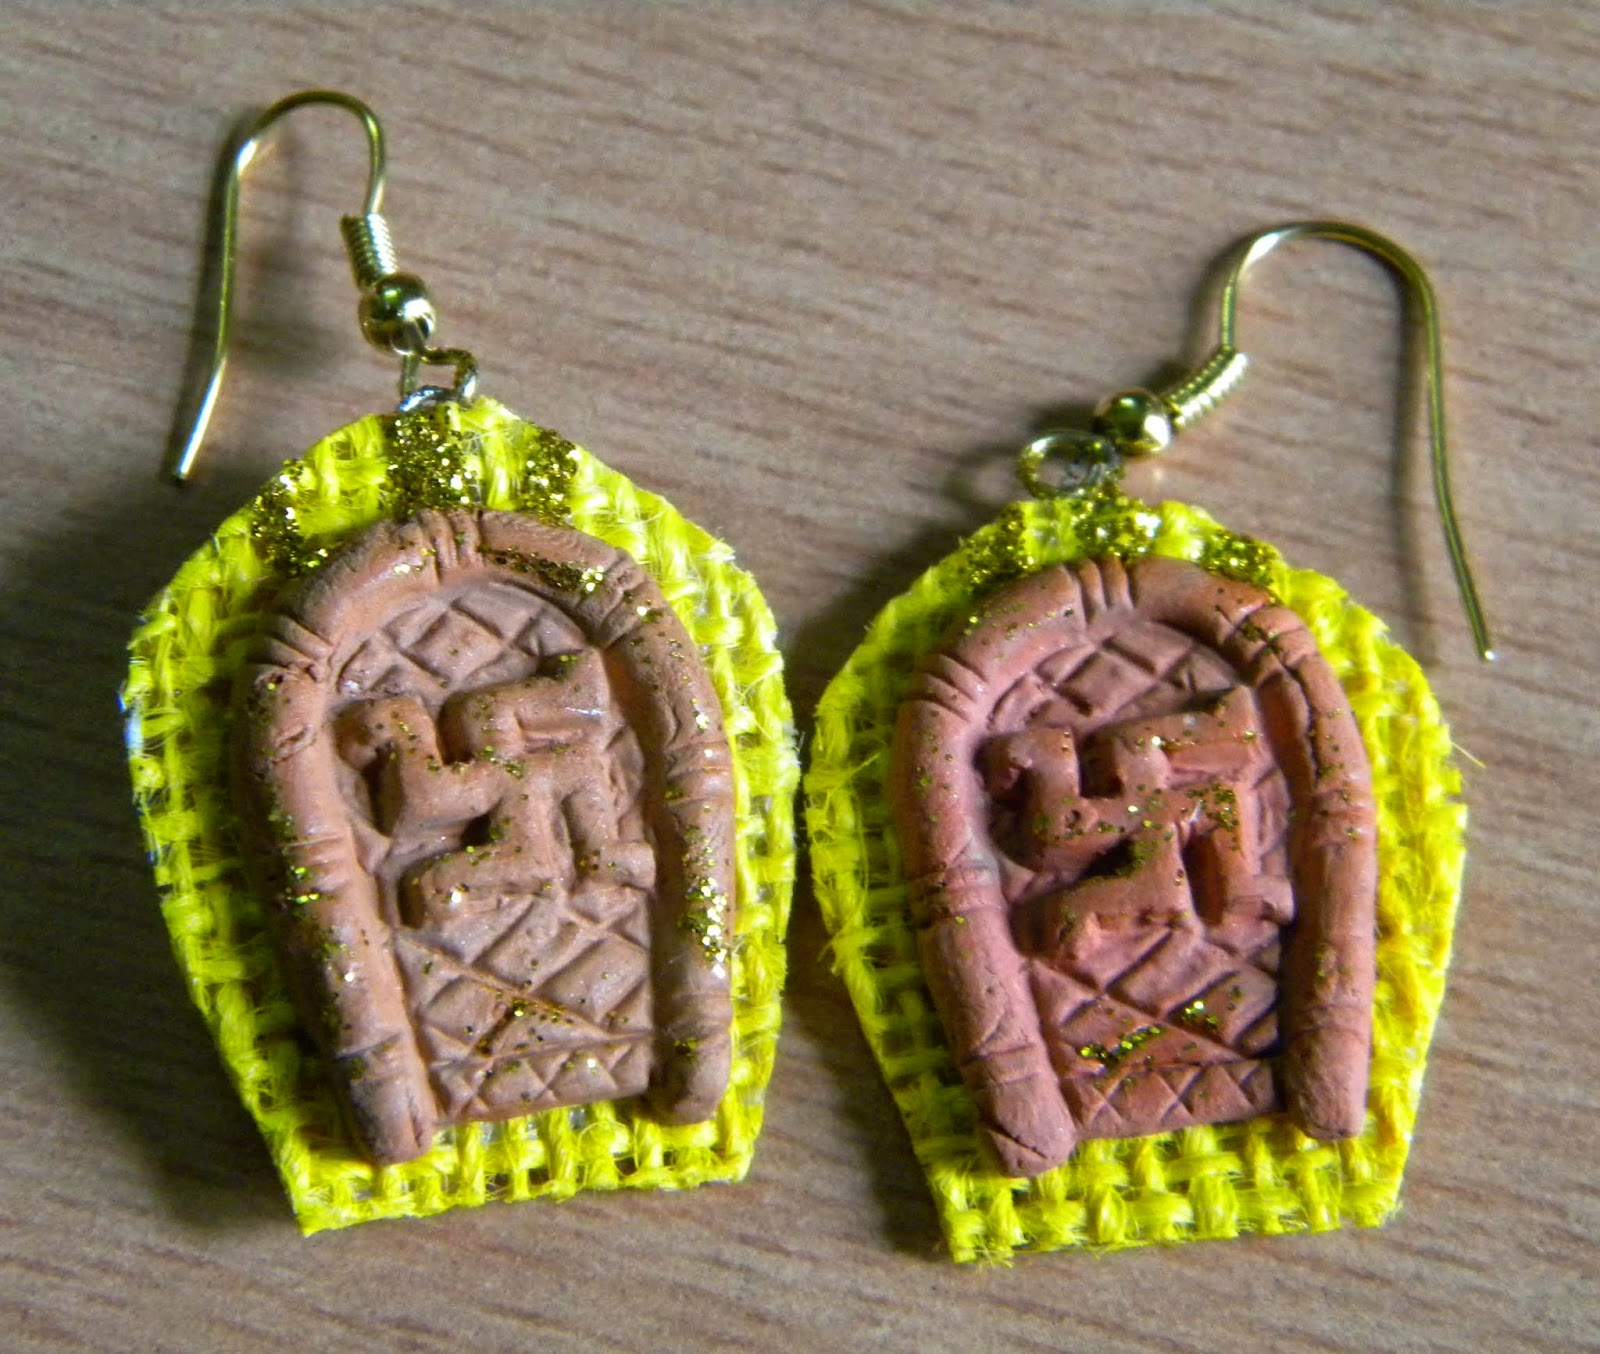 fashion jewellery, handmade earring, handmade jewellery, jute earring, jute jewellery, terracotta earring, trendy earring,